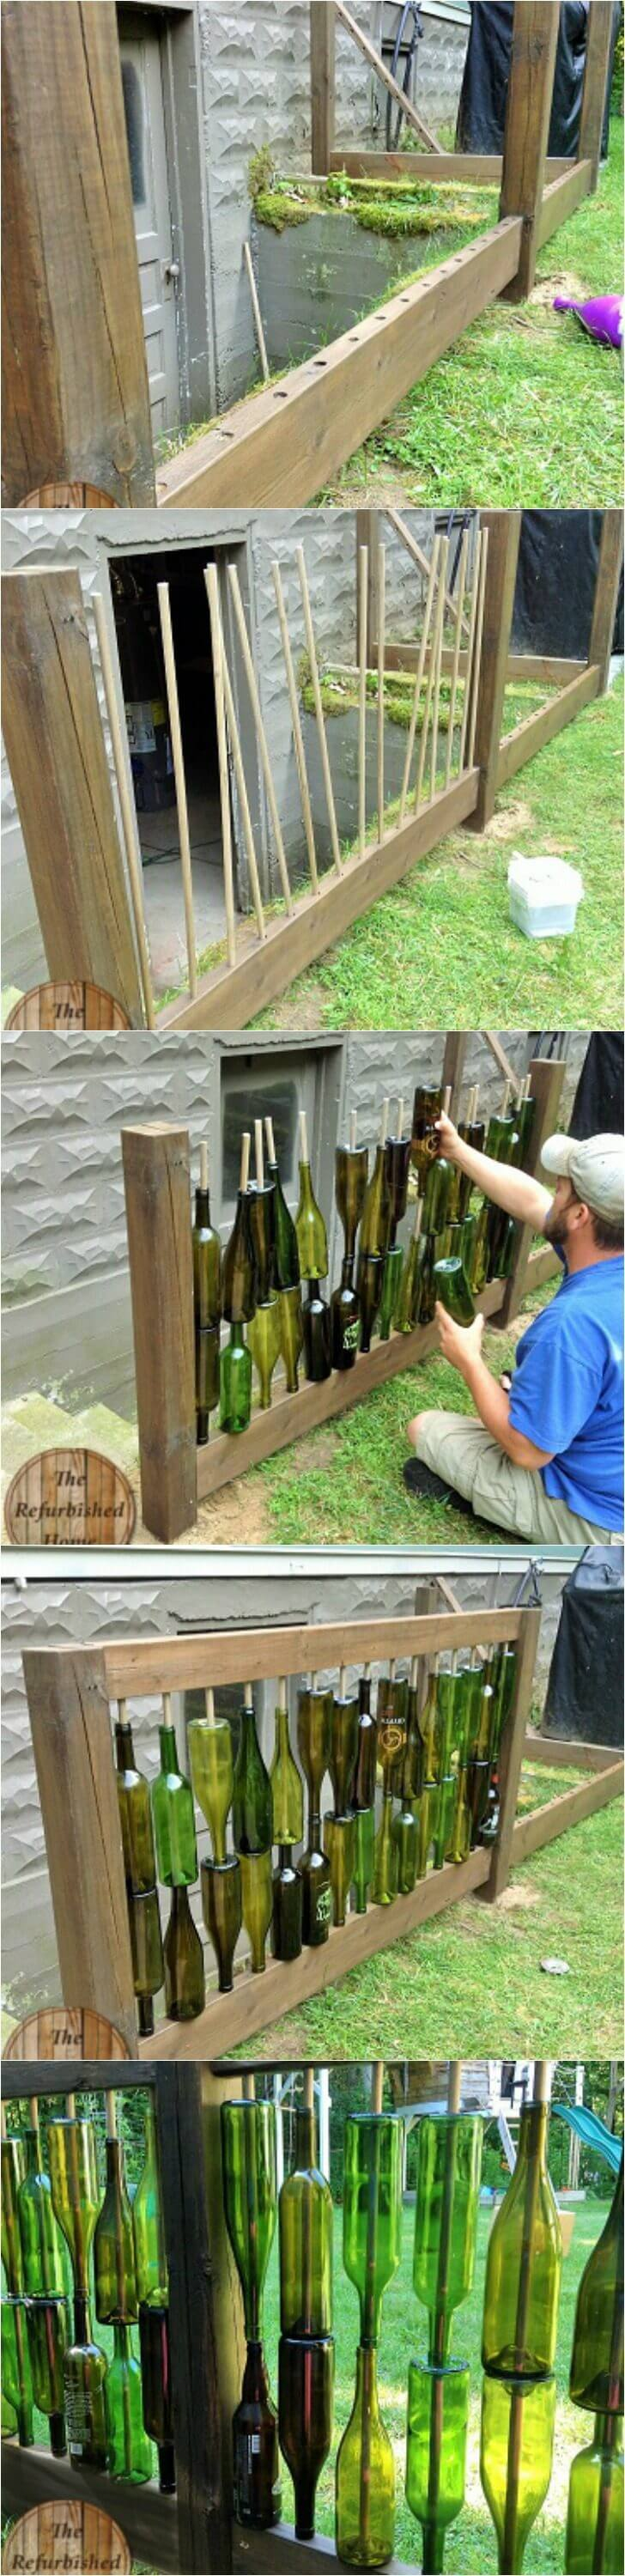 37 Best Repurposed DIY Wine Bottle Craft Ideas and Designs for 2018